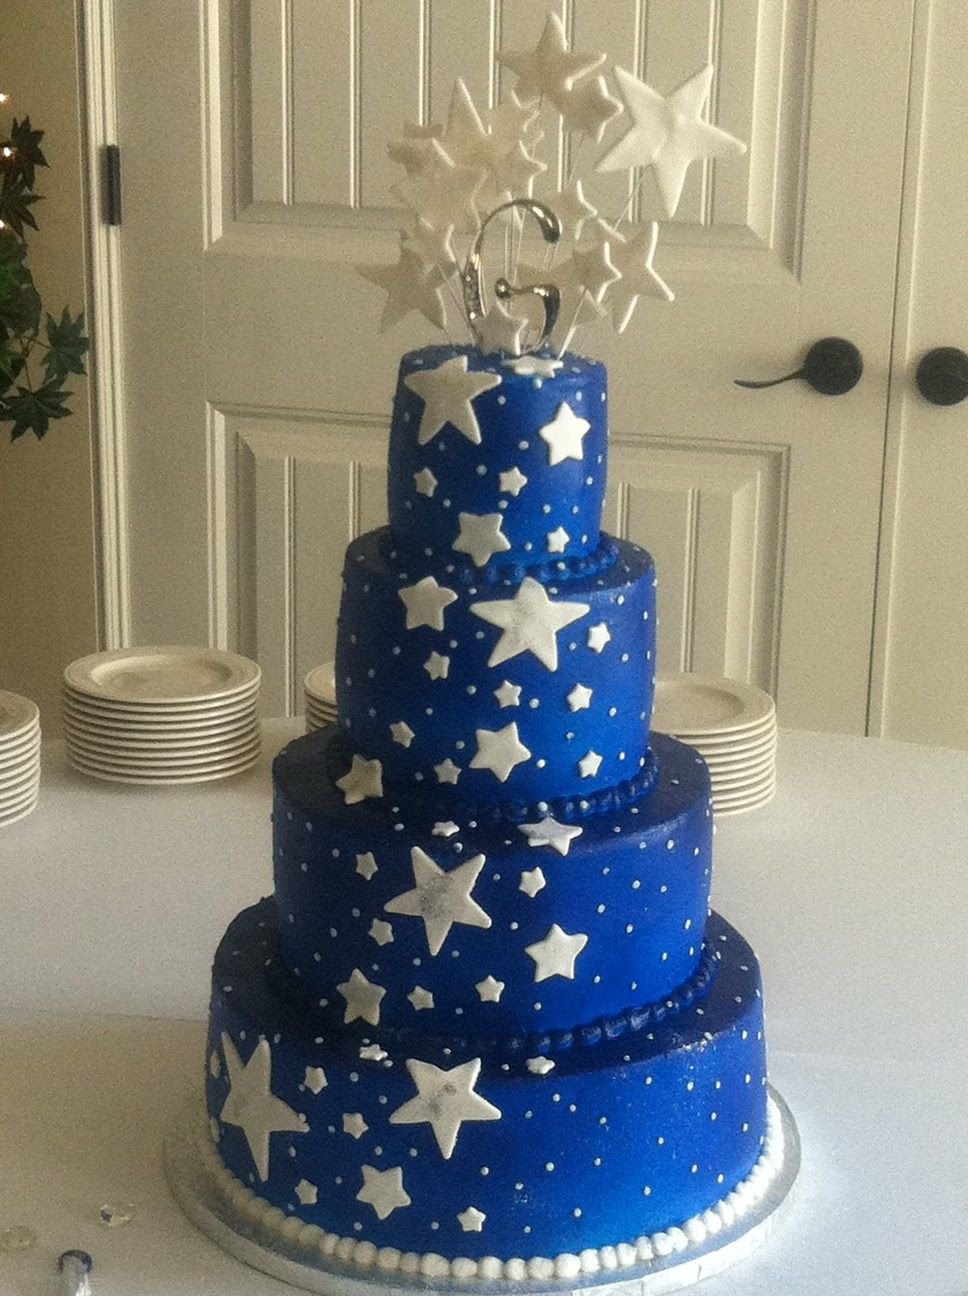 Midnight Blue Wedding Cake I Would Want The Cake White And